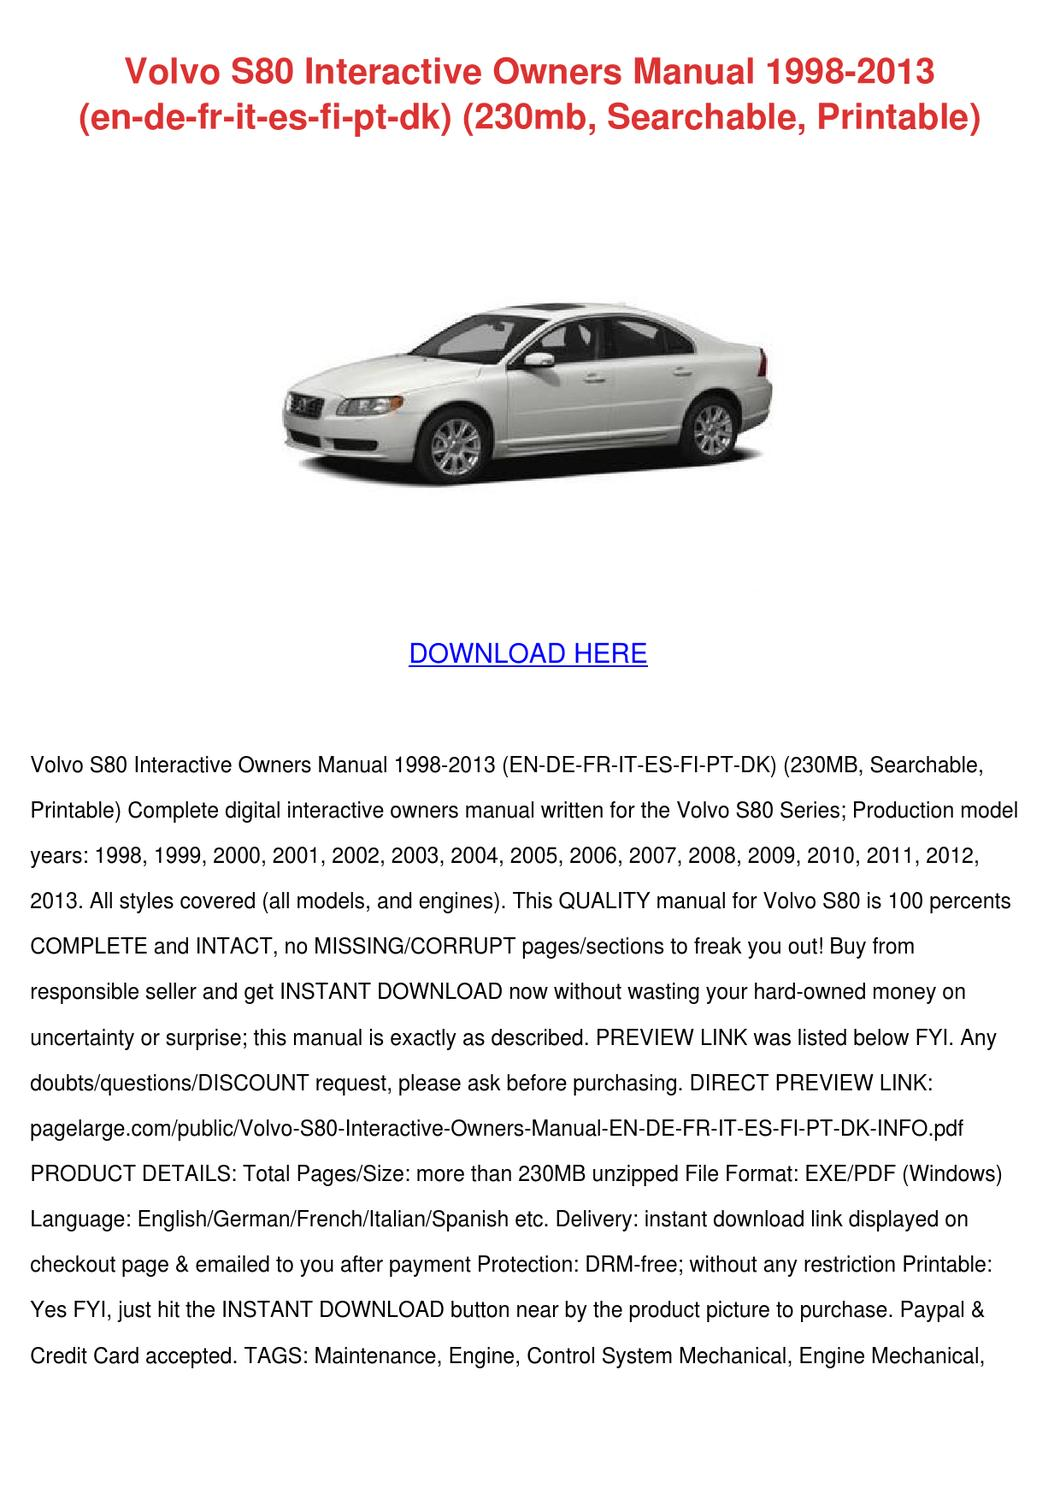 volvo s80 interactive owners manual 1998 2013 by venettasonnier issuu